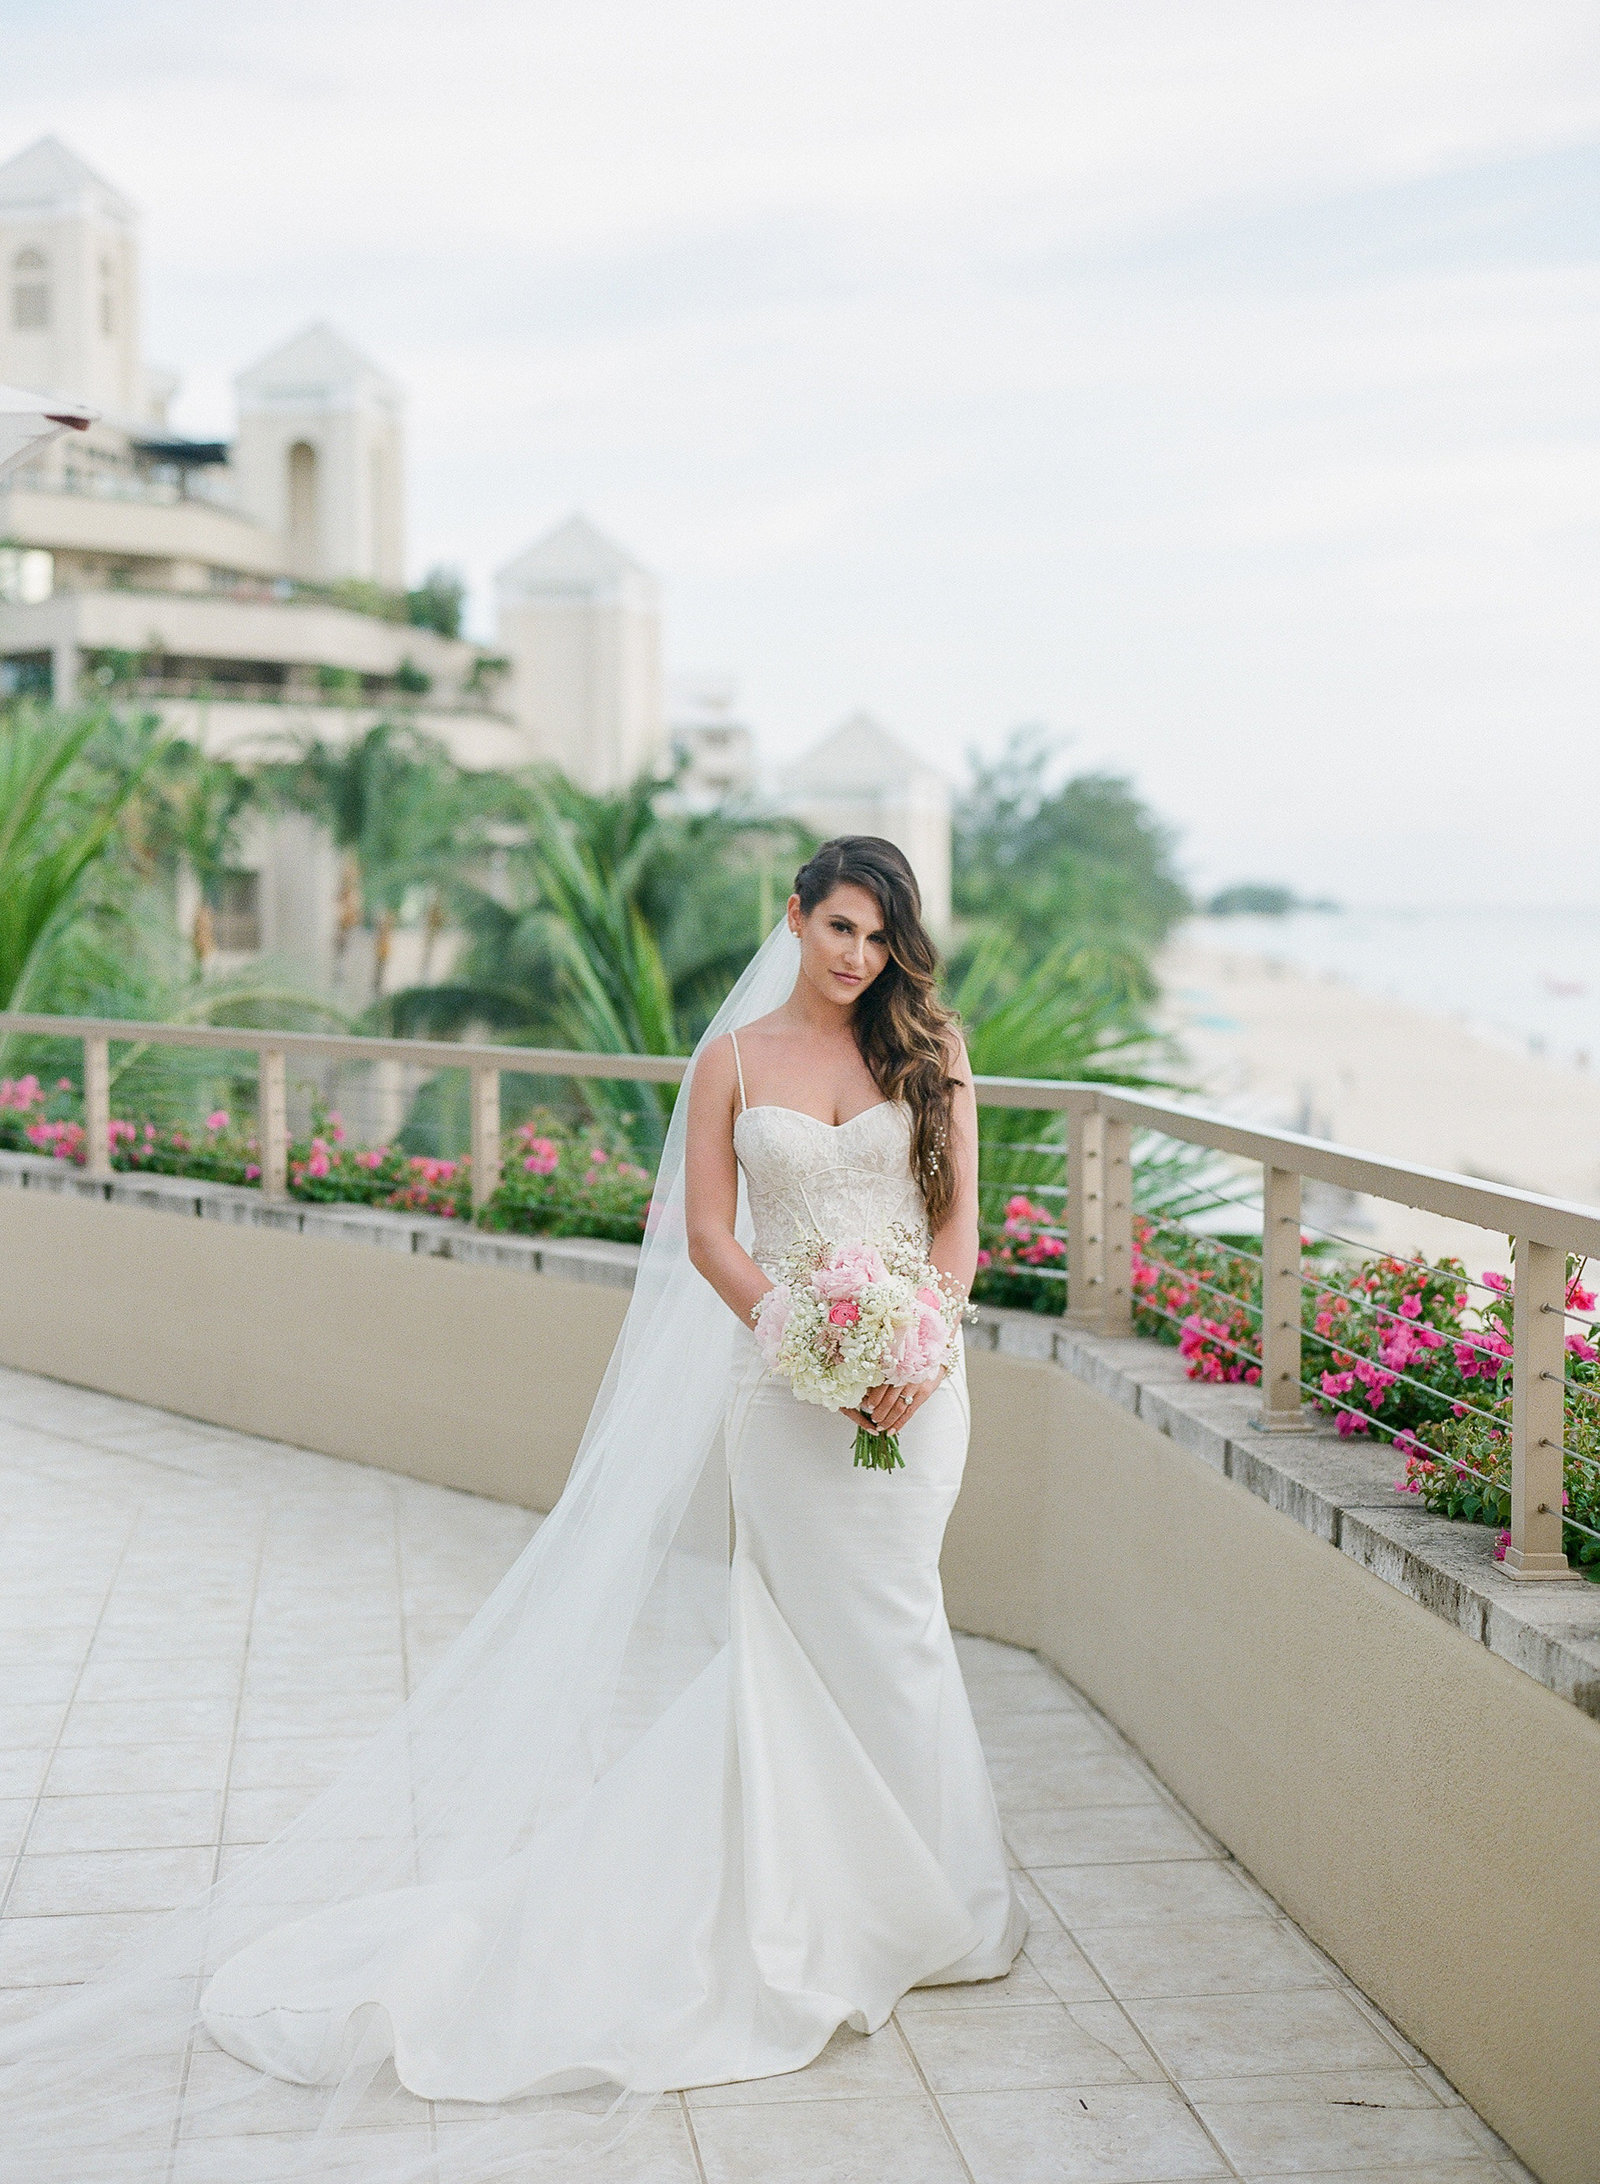 20180810-Pura-Soul-Photo-Ritz-Grand-Cayman-Wedding-16